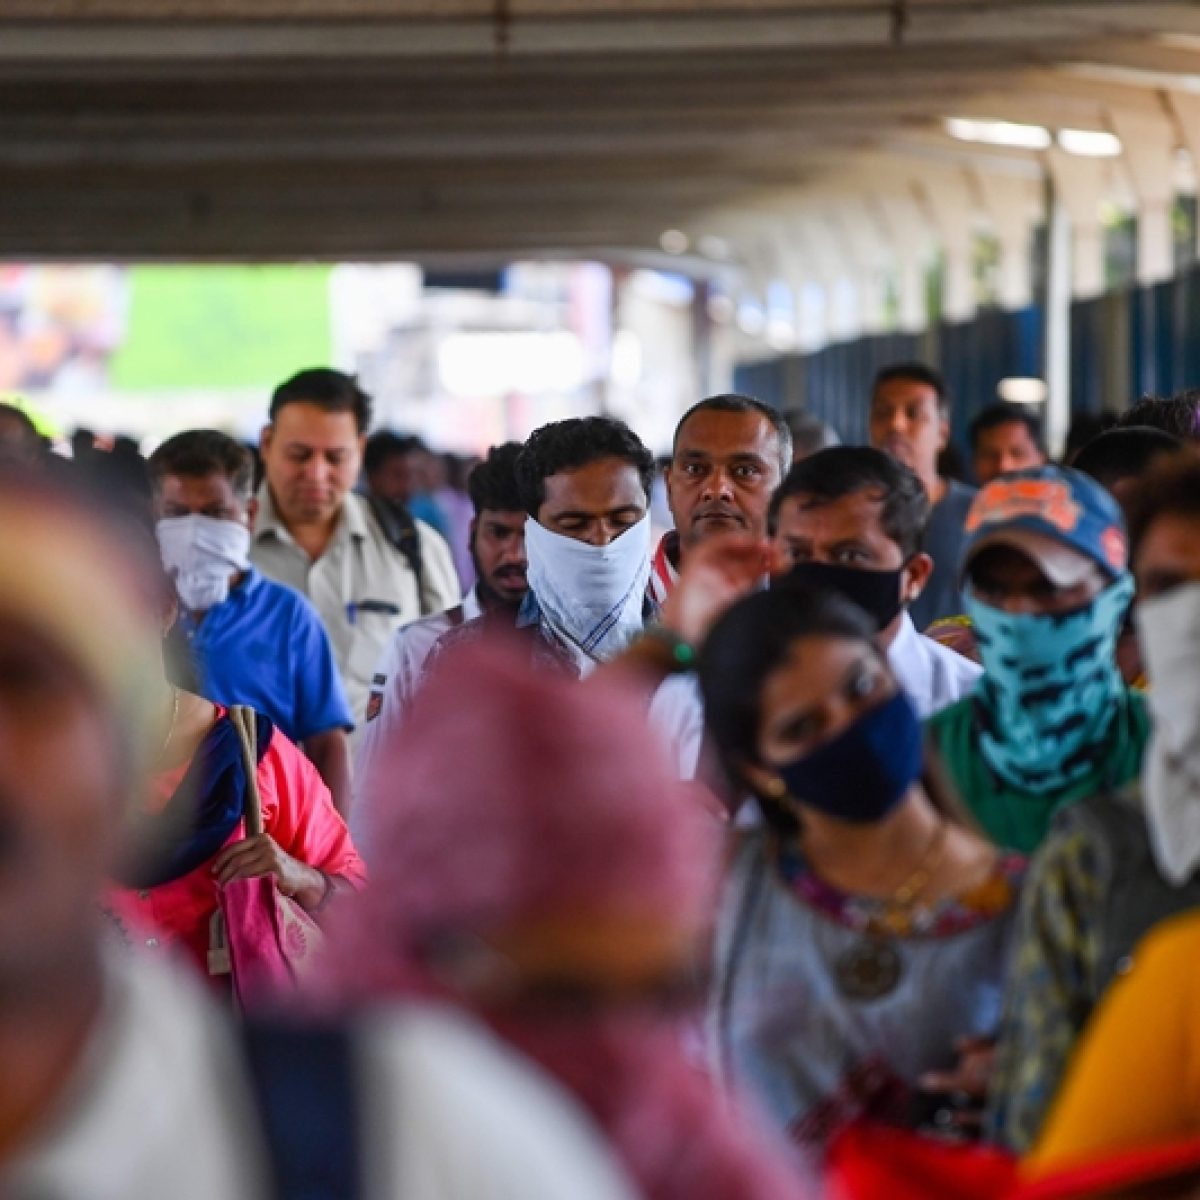 Coronavirus lockdown: Maha govt likely to extend lockdown by few more weeks in Mumbai, other urban areas